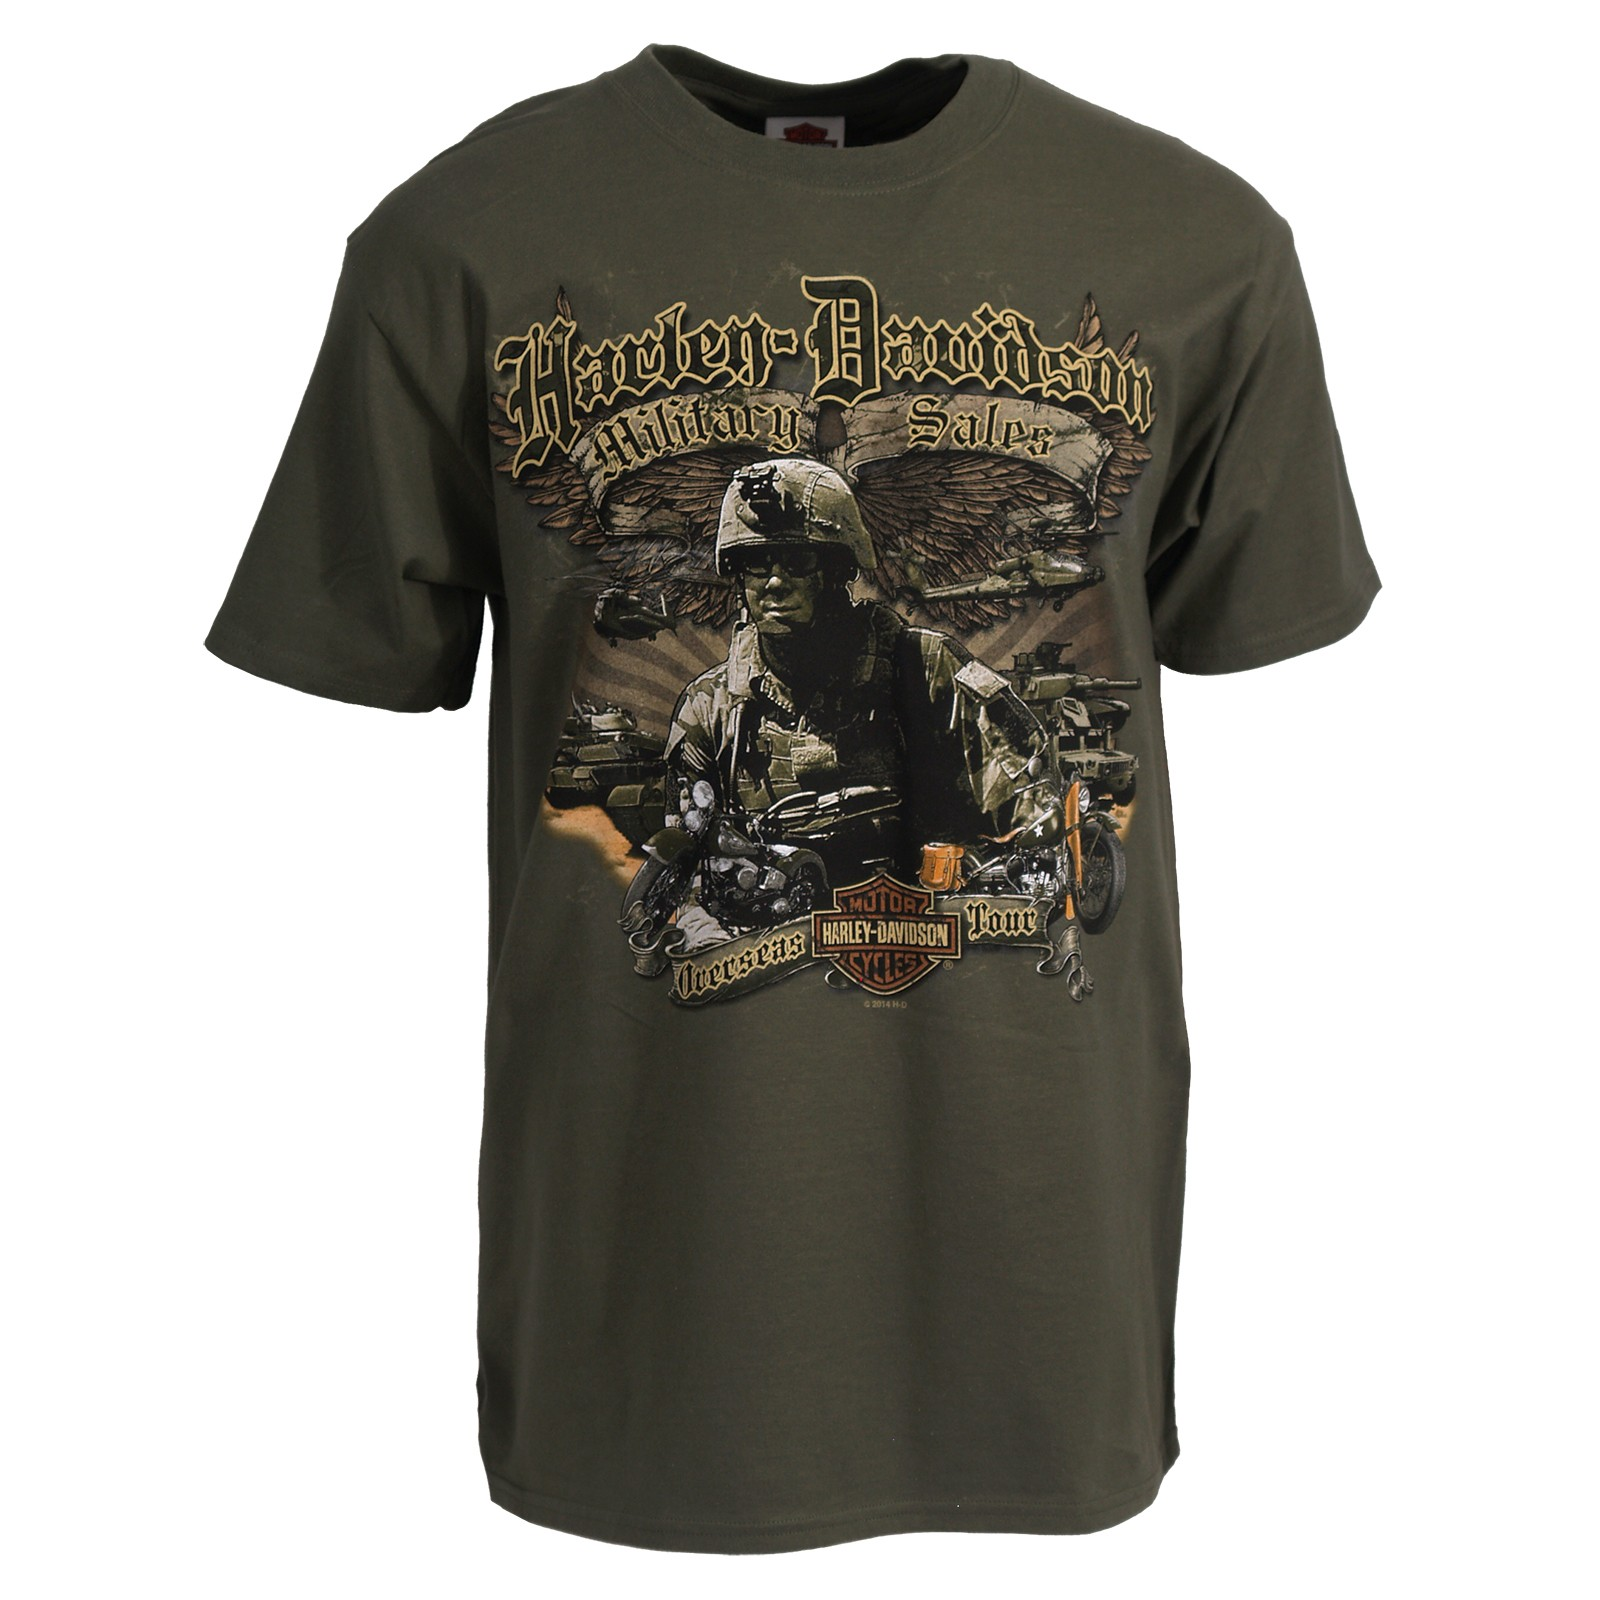 Harley-Davidson Men's Graphic T-Shirt - Winged Patrol  | Overseas Tour